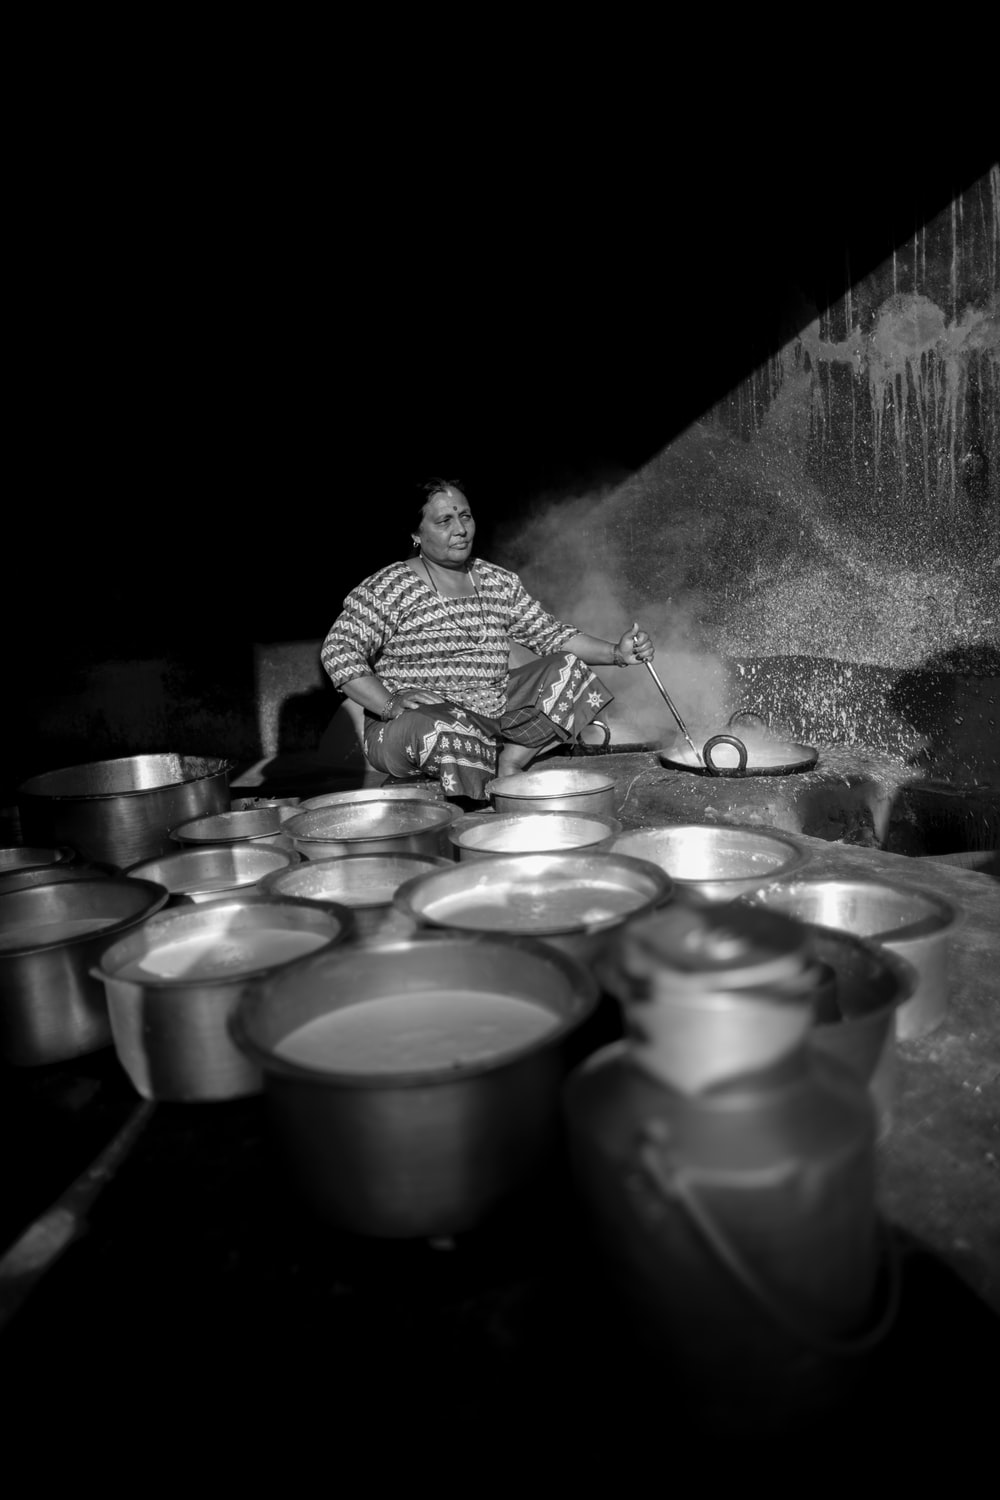 grayscale photography of woman cooking while holding a ladle